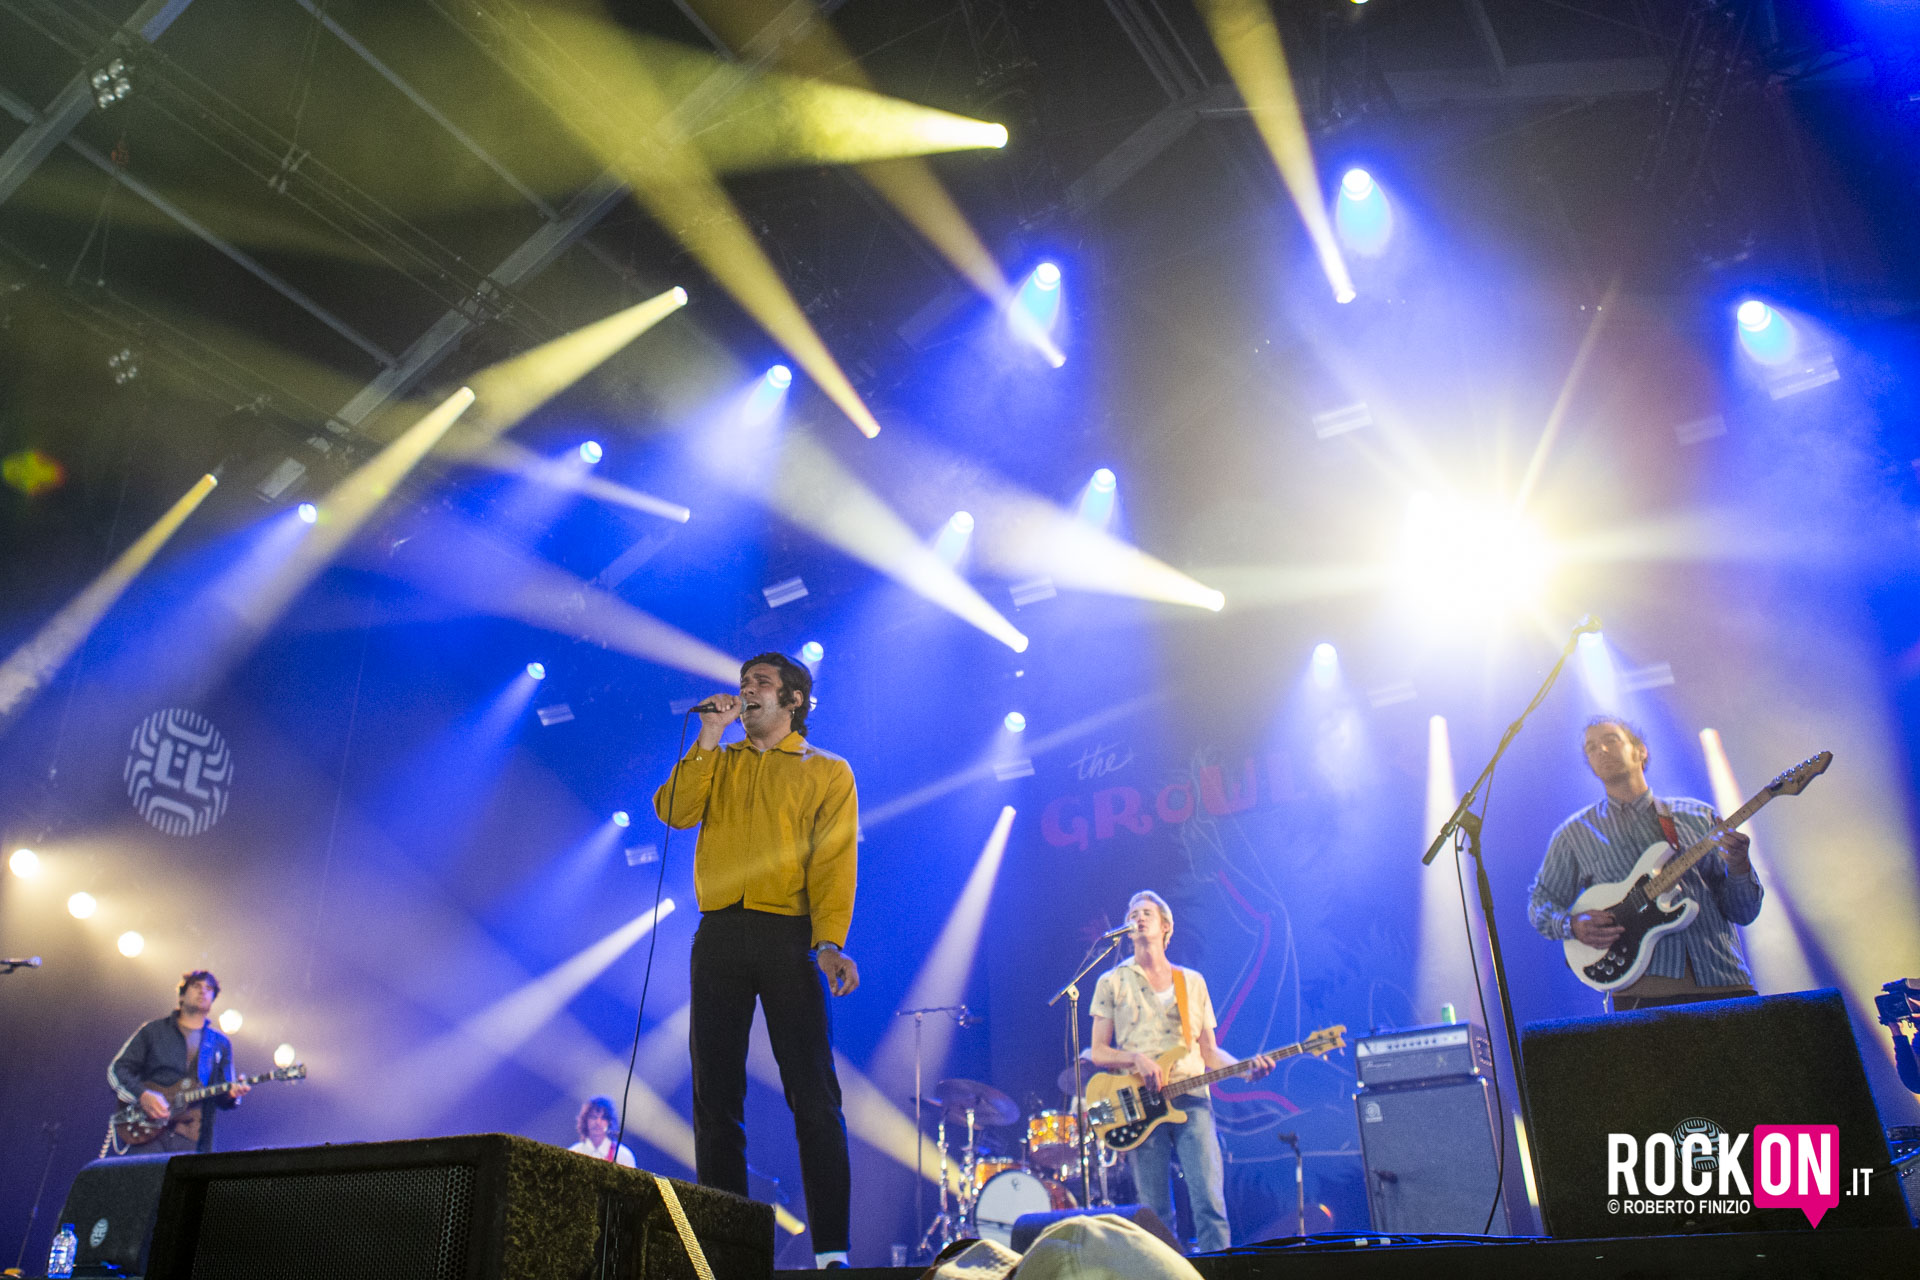 rockon-the-growlers-lowlands-festival-netherlands-music-concert-roberto-finizio-16-august-2019-50